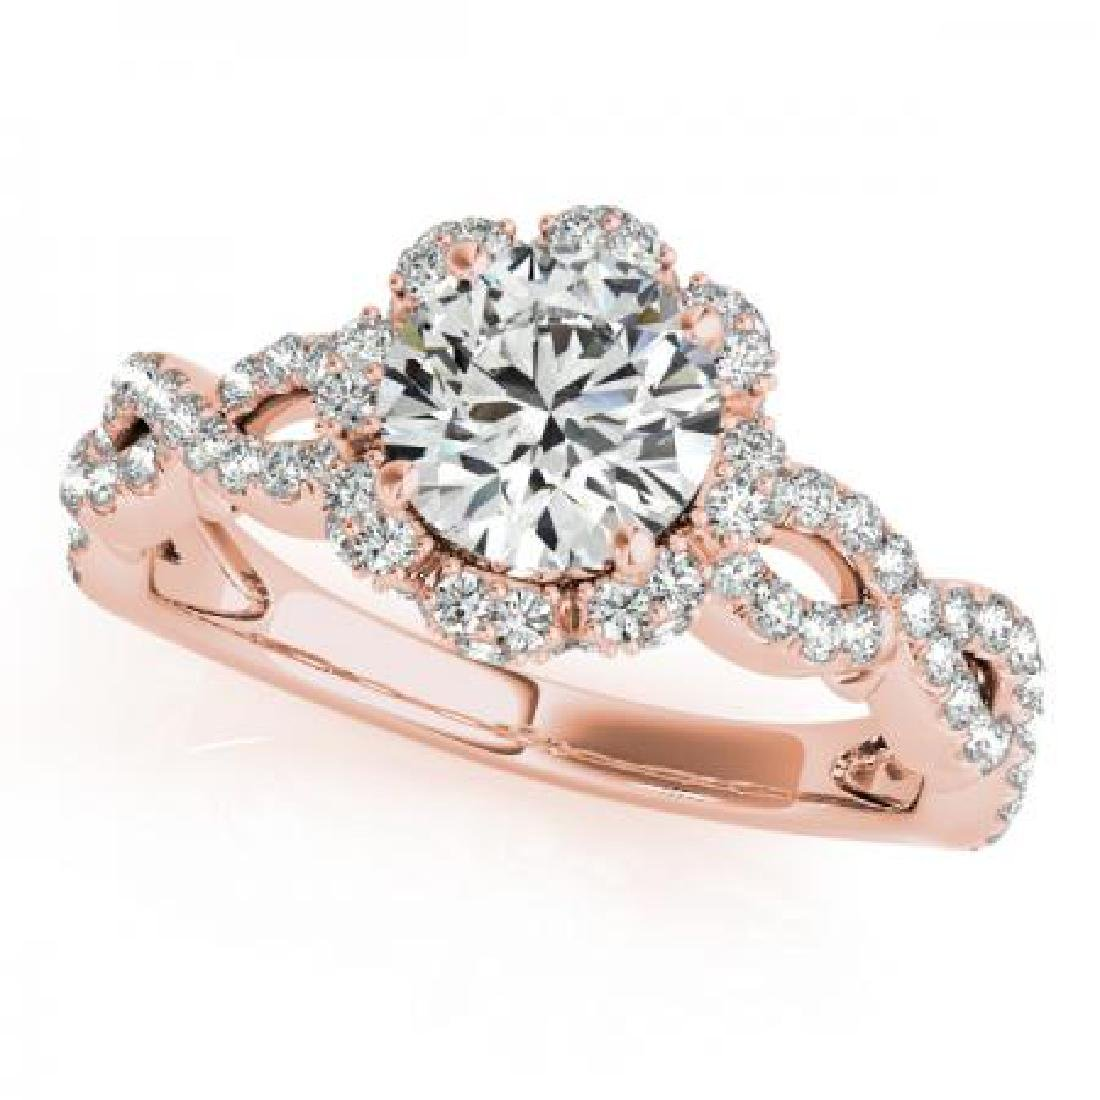 CERTIFIED 18K ROSE GOLD 1.00 CT G-H/VS-SI1 DIAMOND HALO